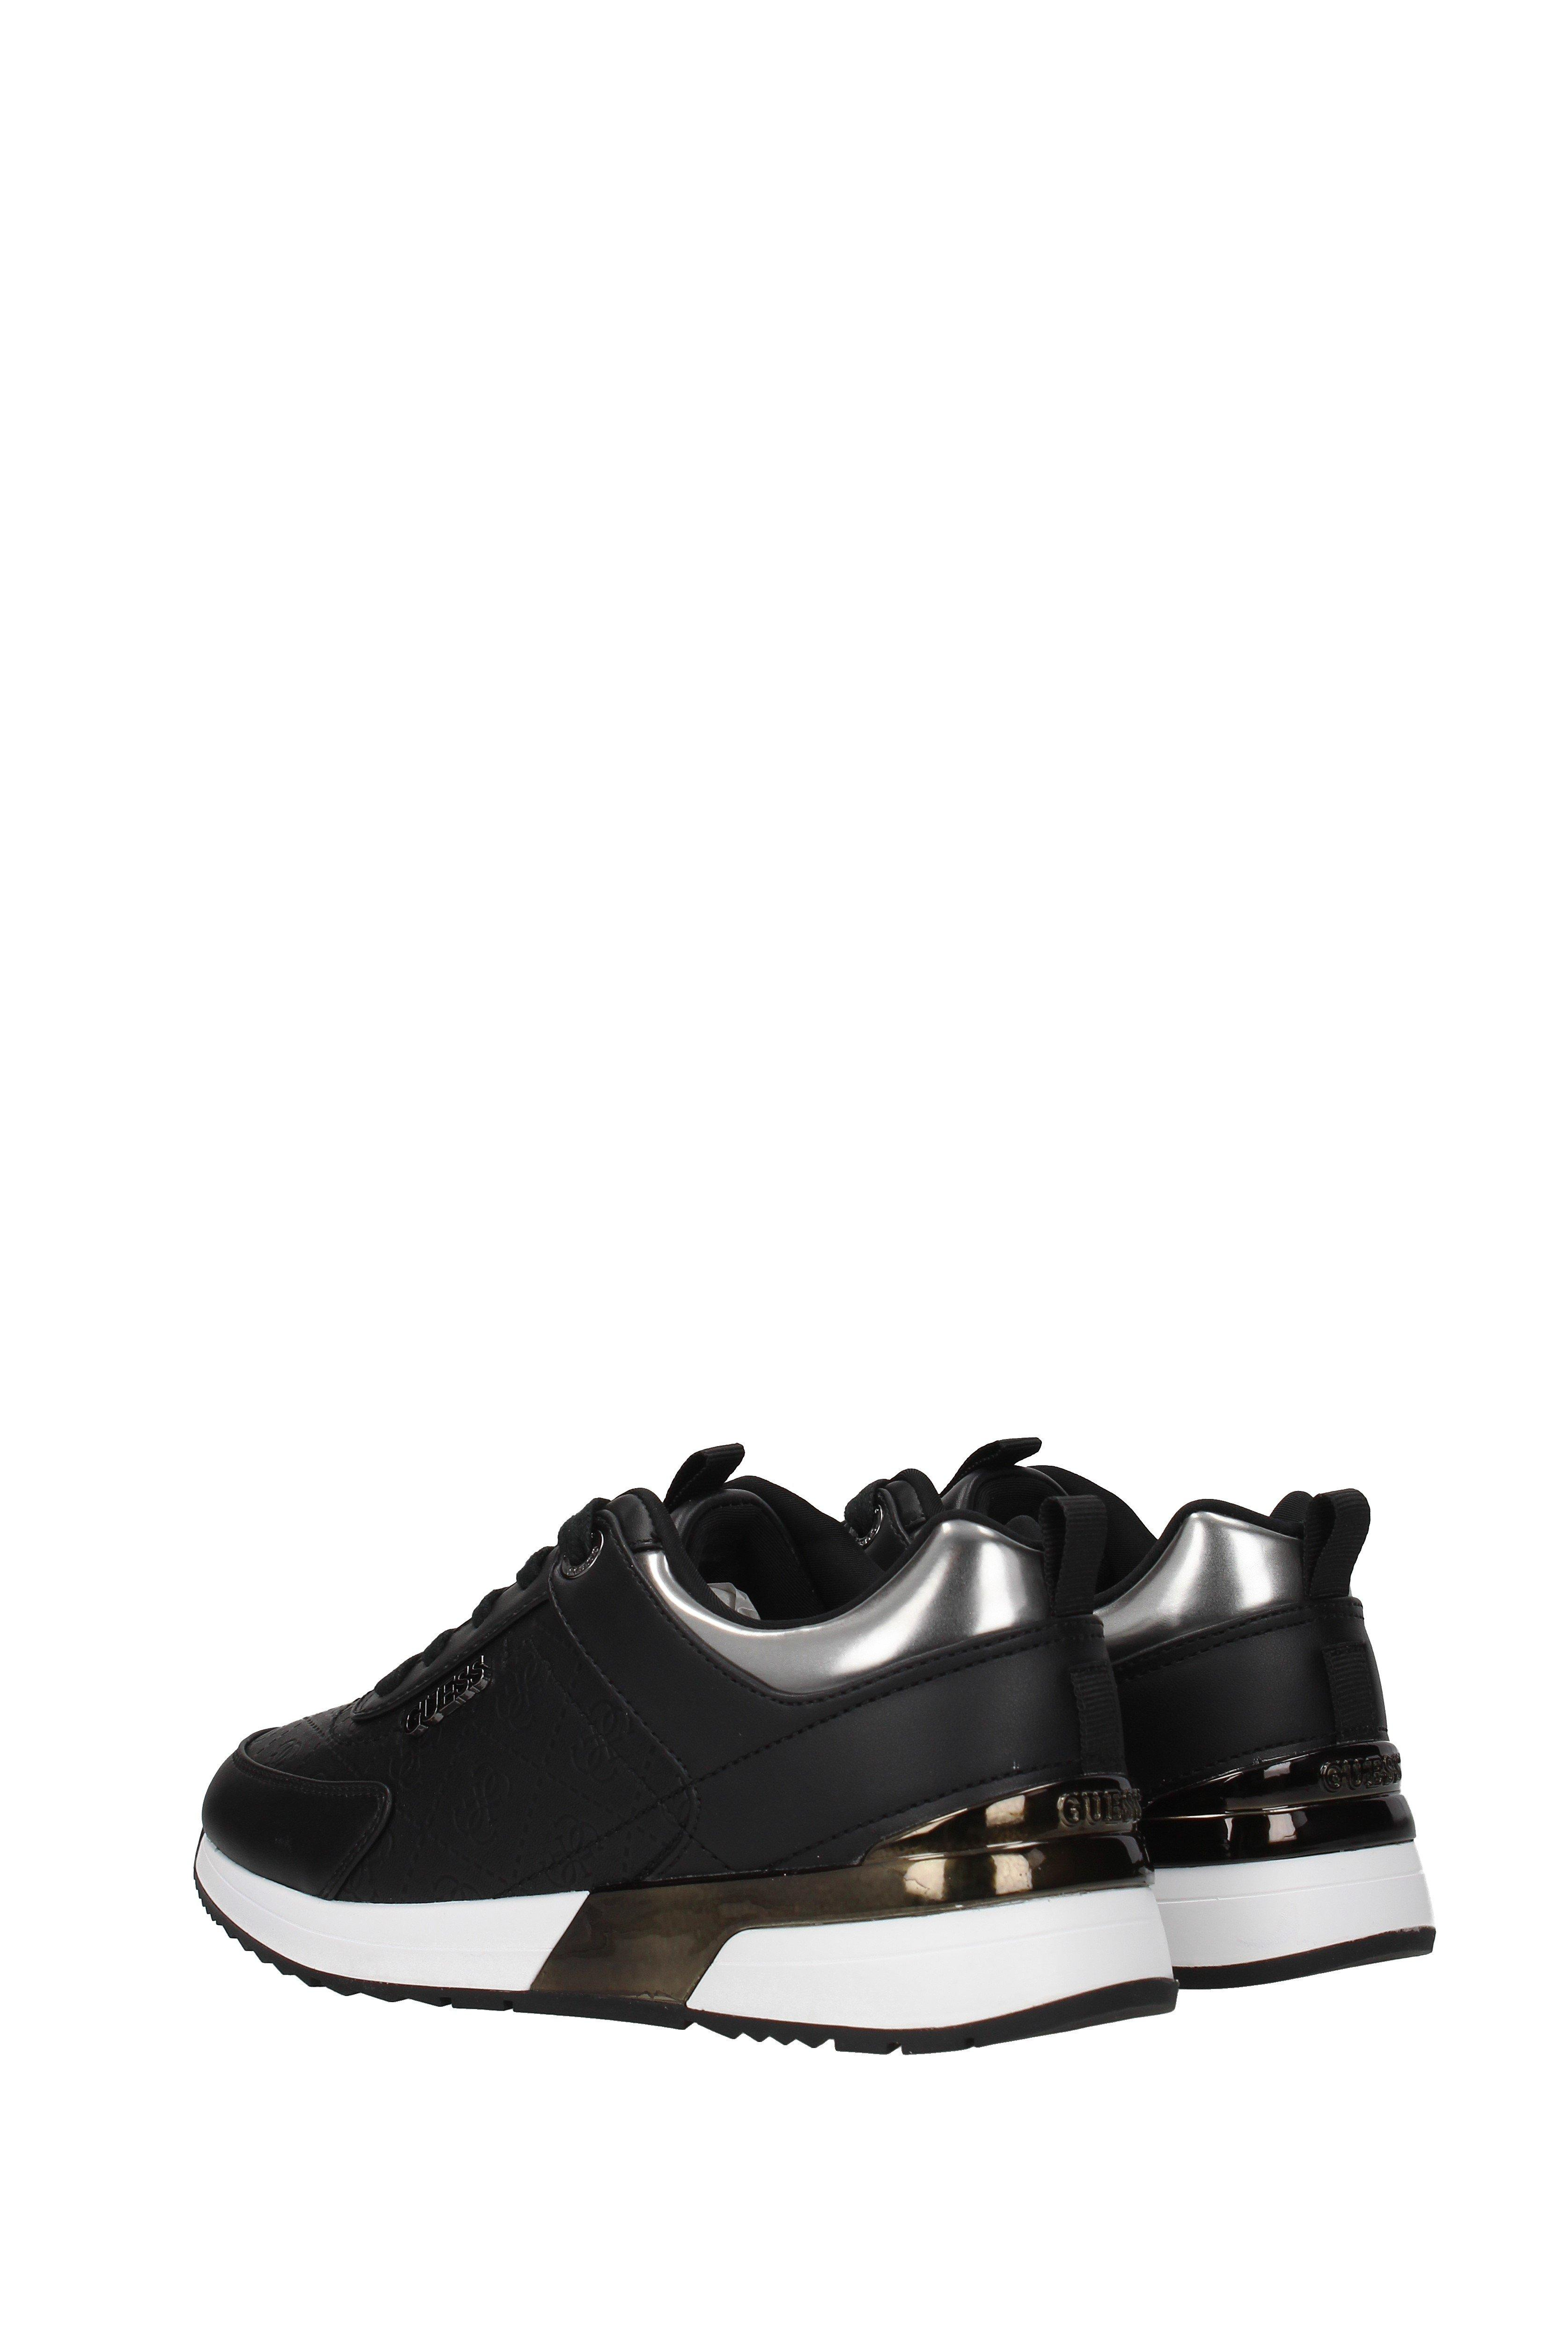 Guess Synthetic Sneakers Women Black - Lyst